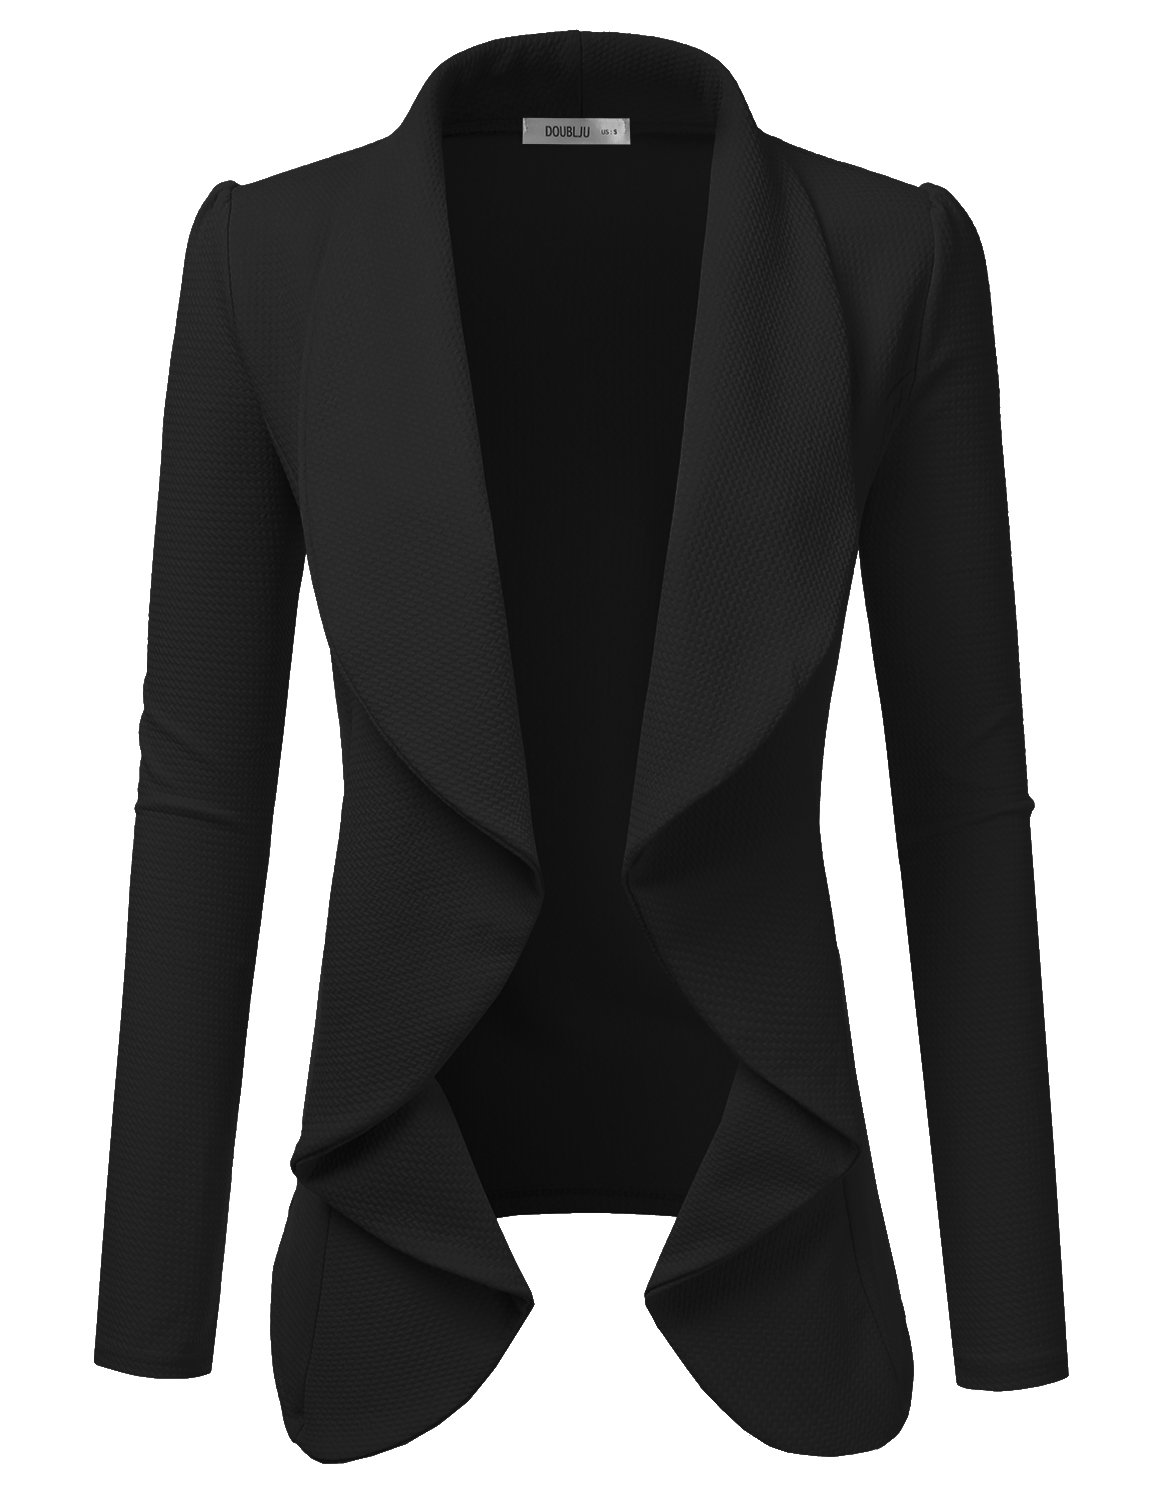 Doublju Classic Draped Open Front Blazer for Women with Plus Size Black 2XL